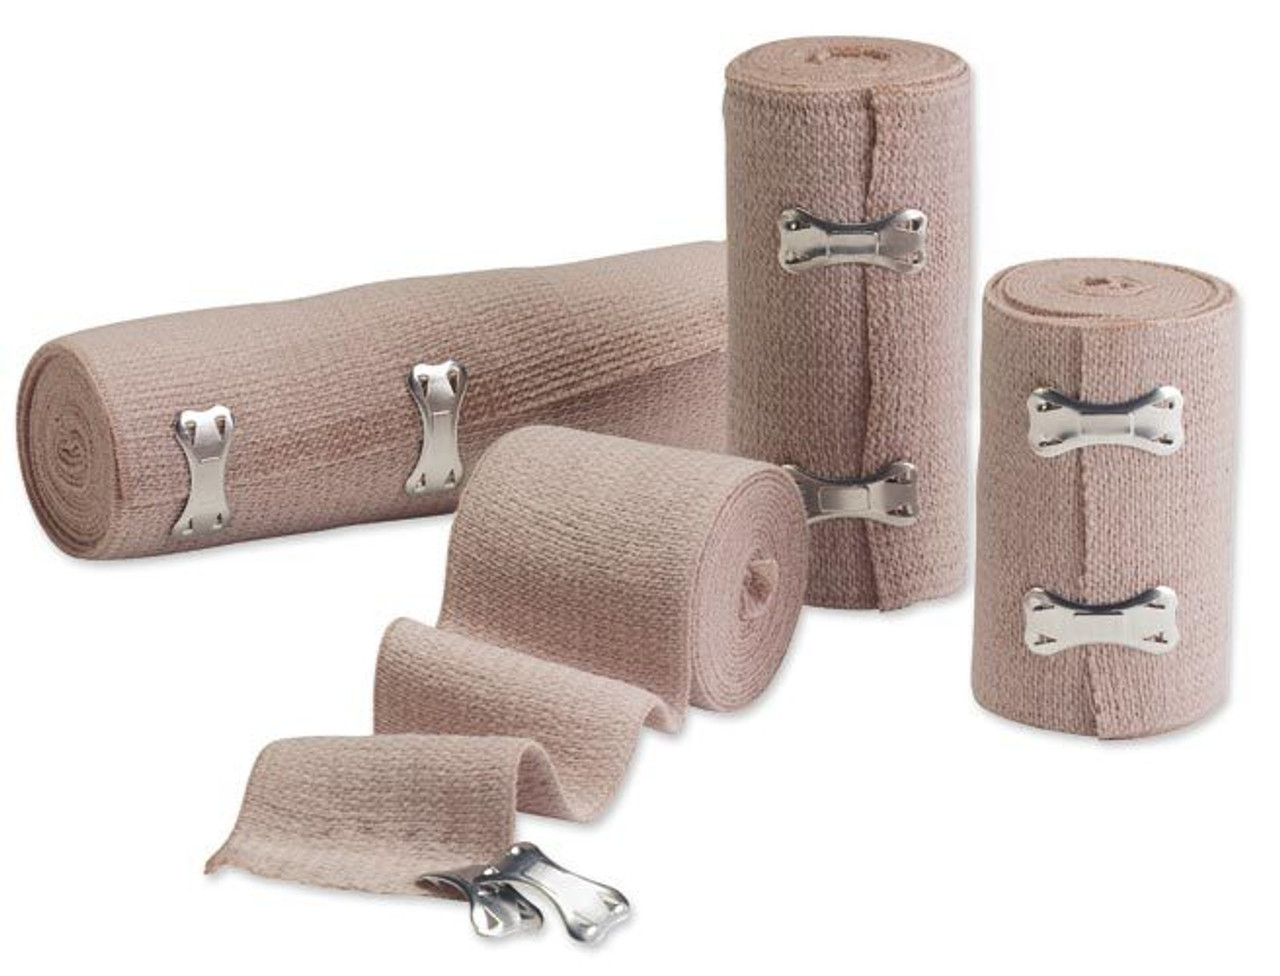 Everguard Elastic Bandages With Clips Brown Live Action Safety